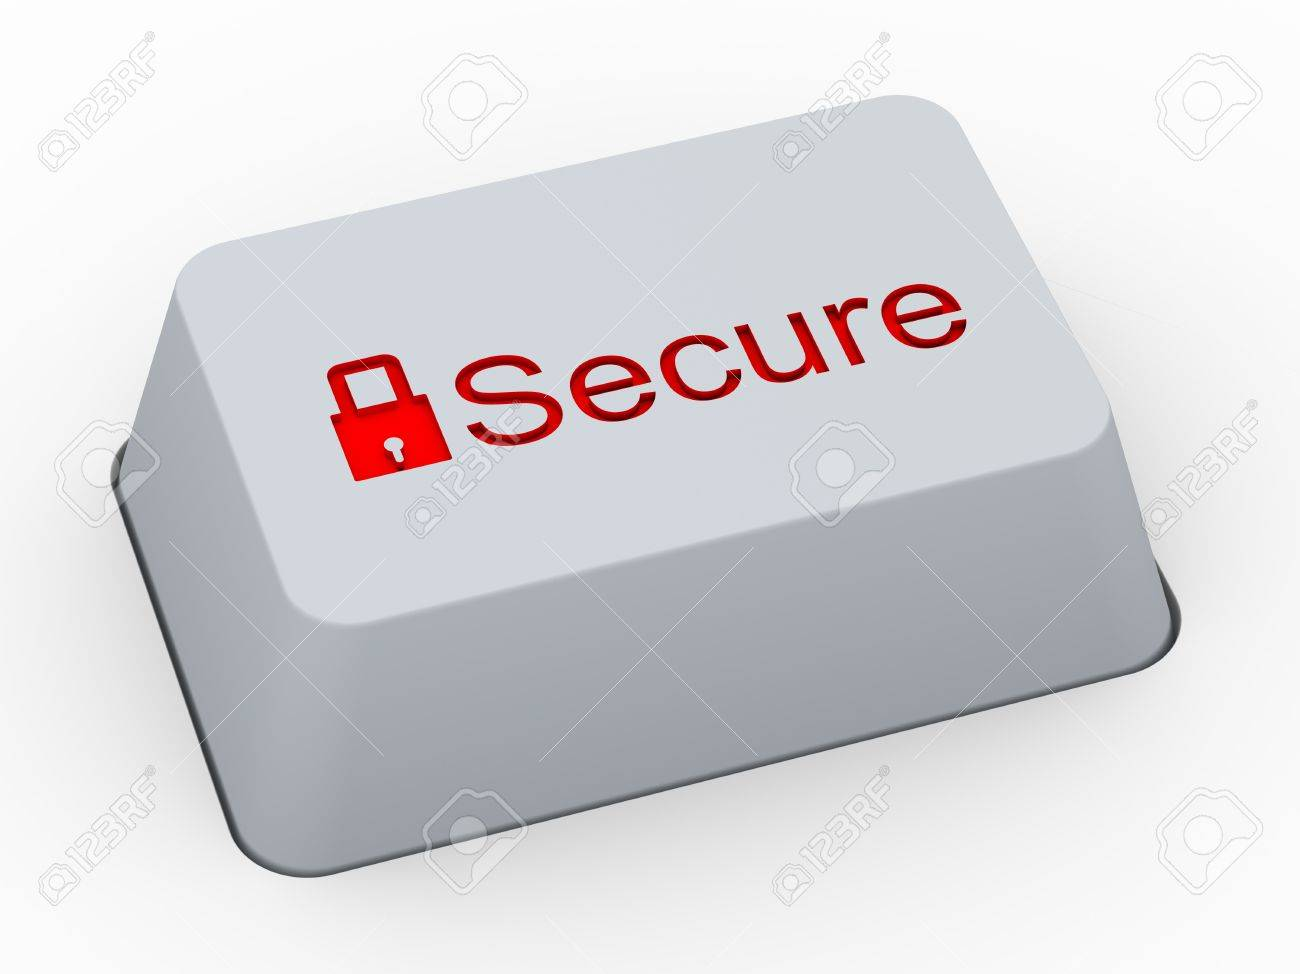 3d render of computer keyboard button with word secure and symbol 3d render of computer keyboard button with word secure and symbol of padlock stock photo biocorpaavc